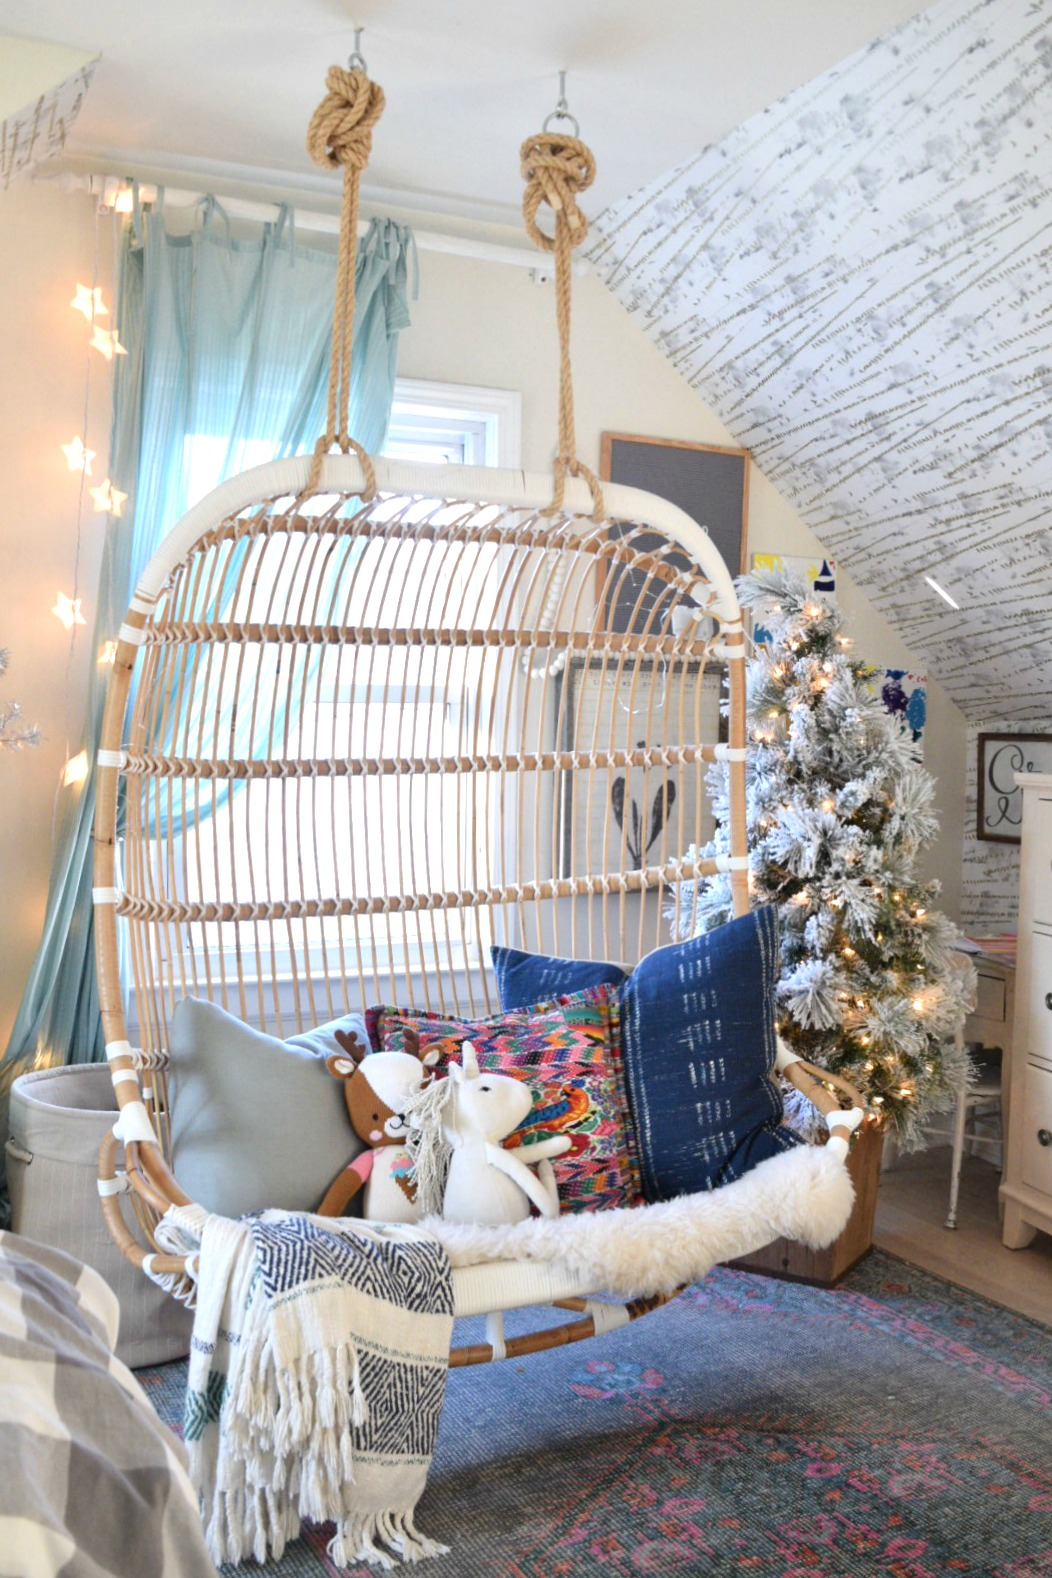 Double Hanging Chair- Amazing Price!